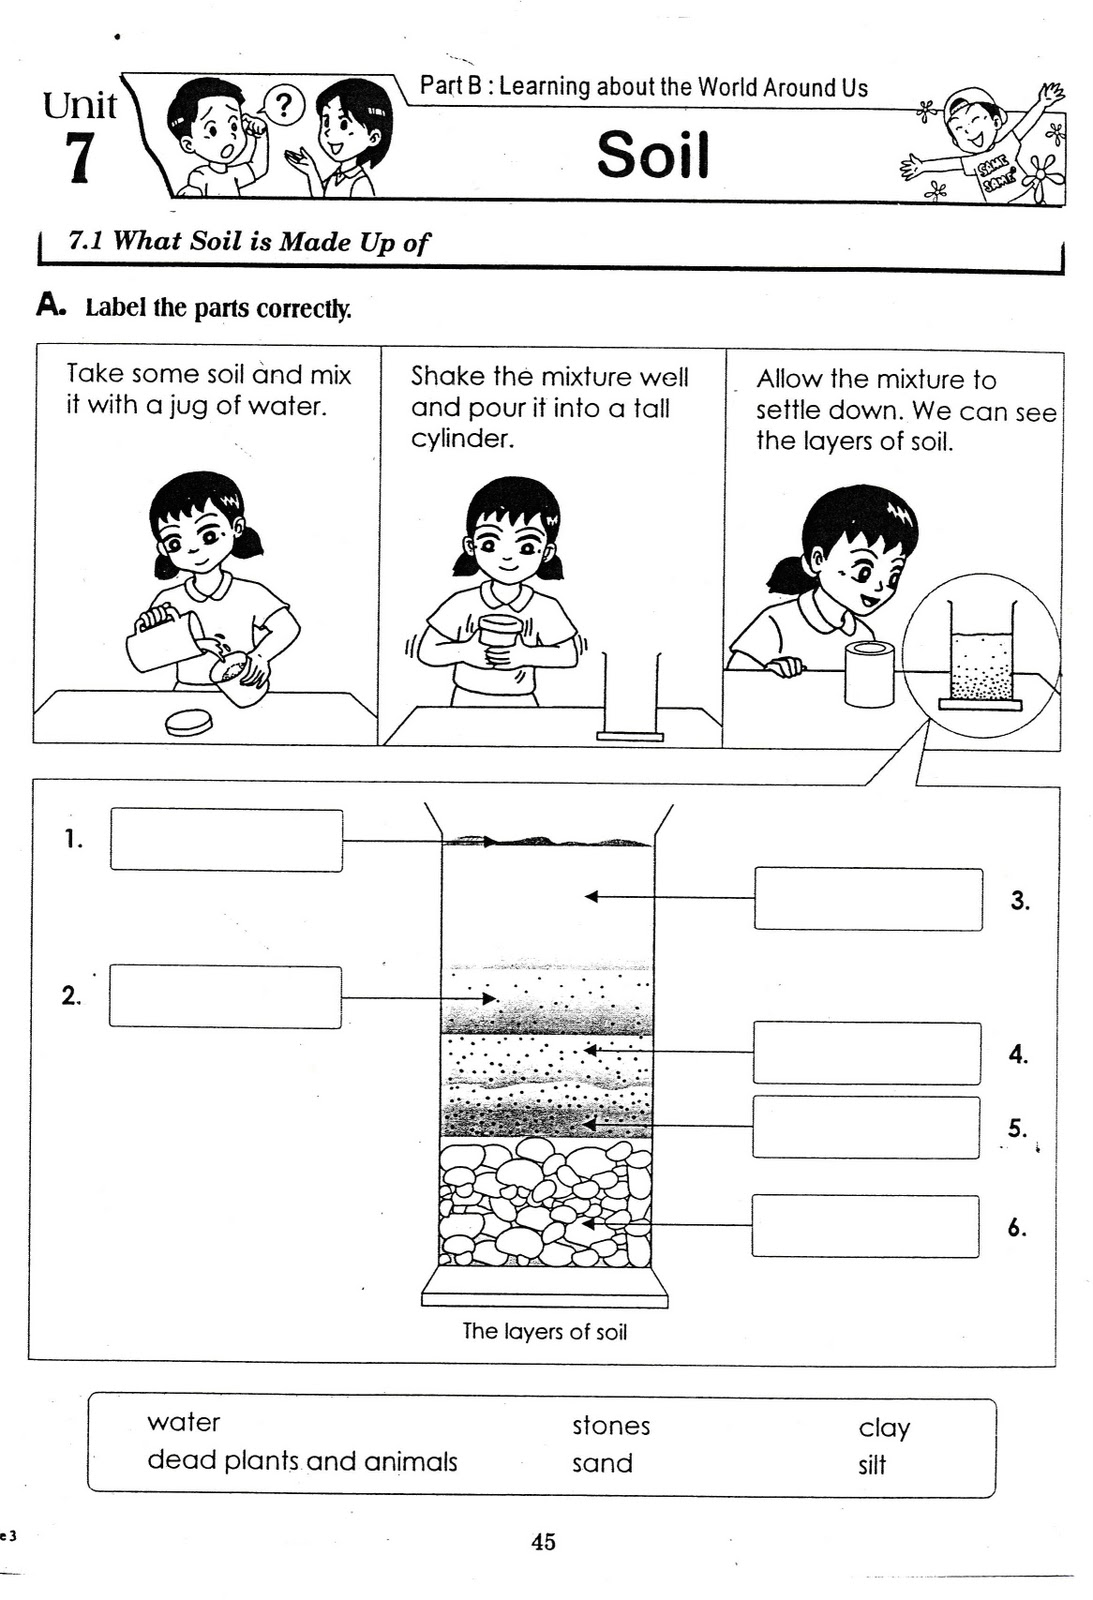 Soil Layers Worksheet | www.imgkid.com - The Image Kid Has It!